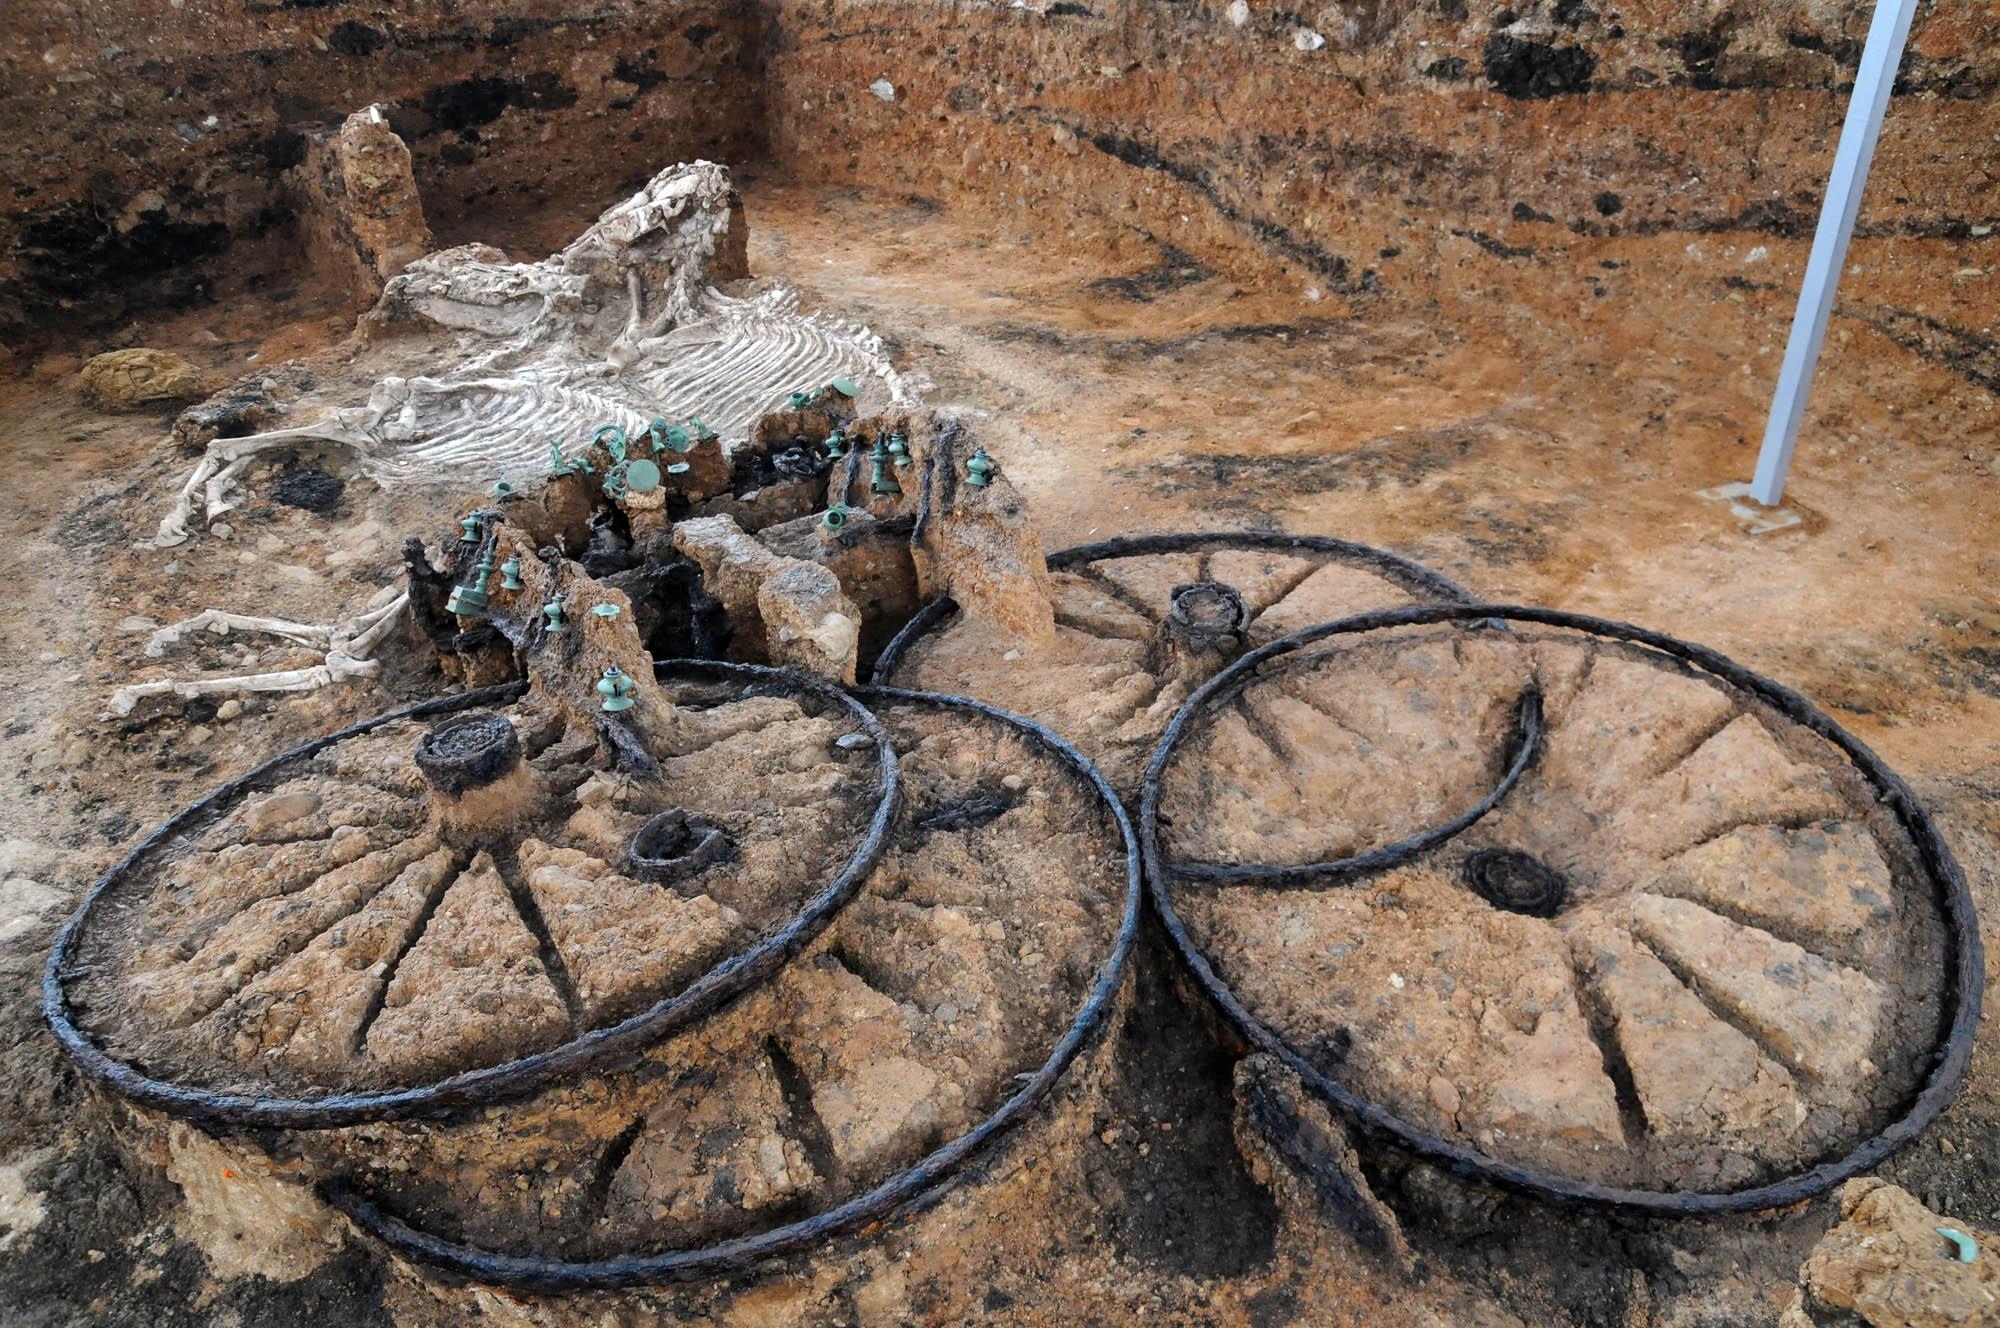 2000 years old Thracian chariot with horse skeletons. Found in Bulgaria by crenk